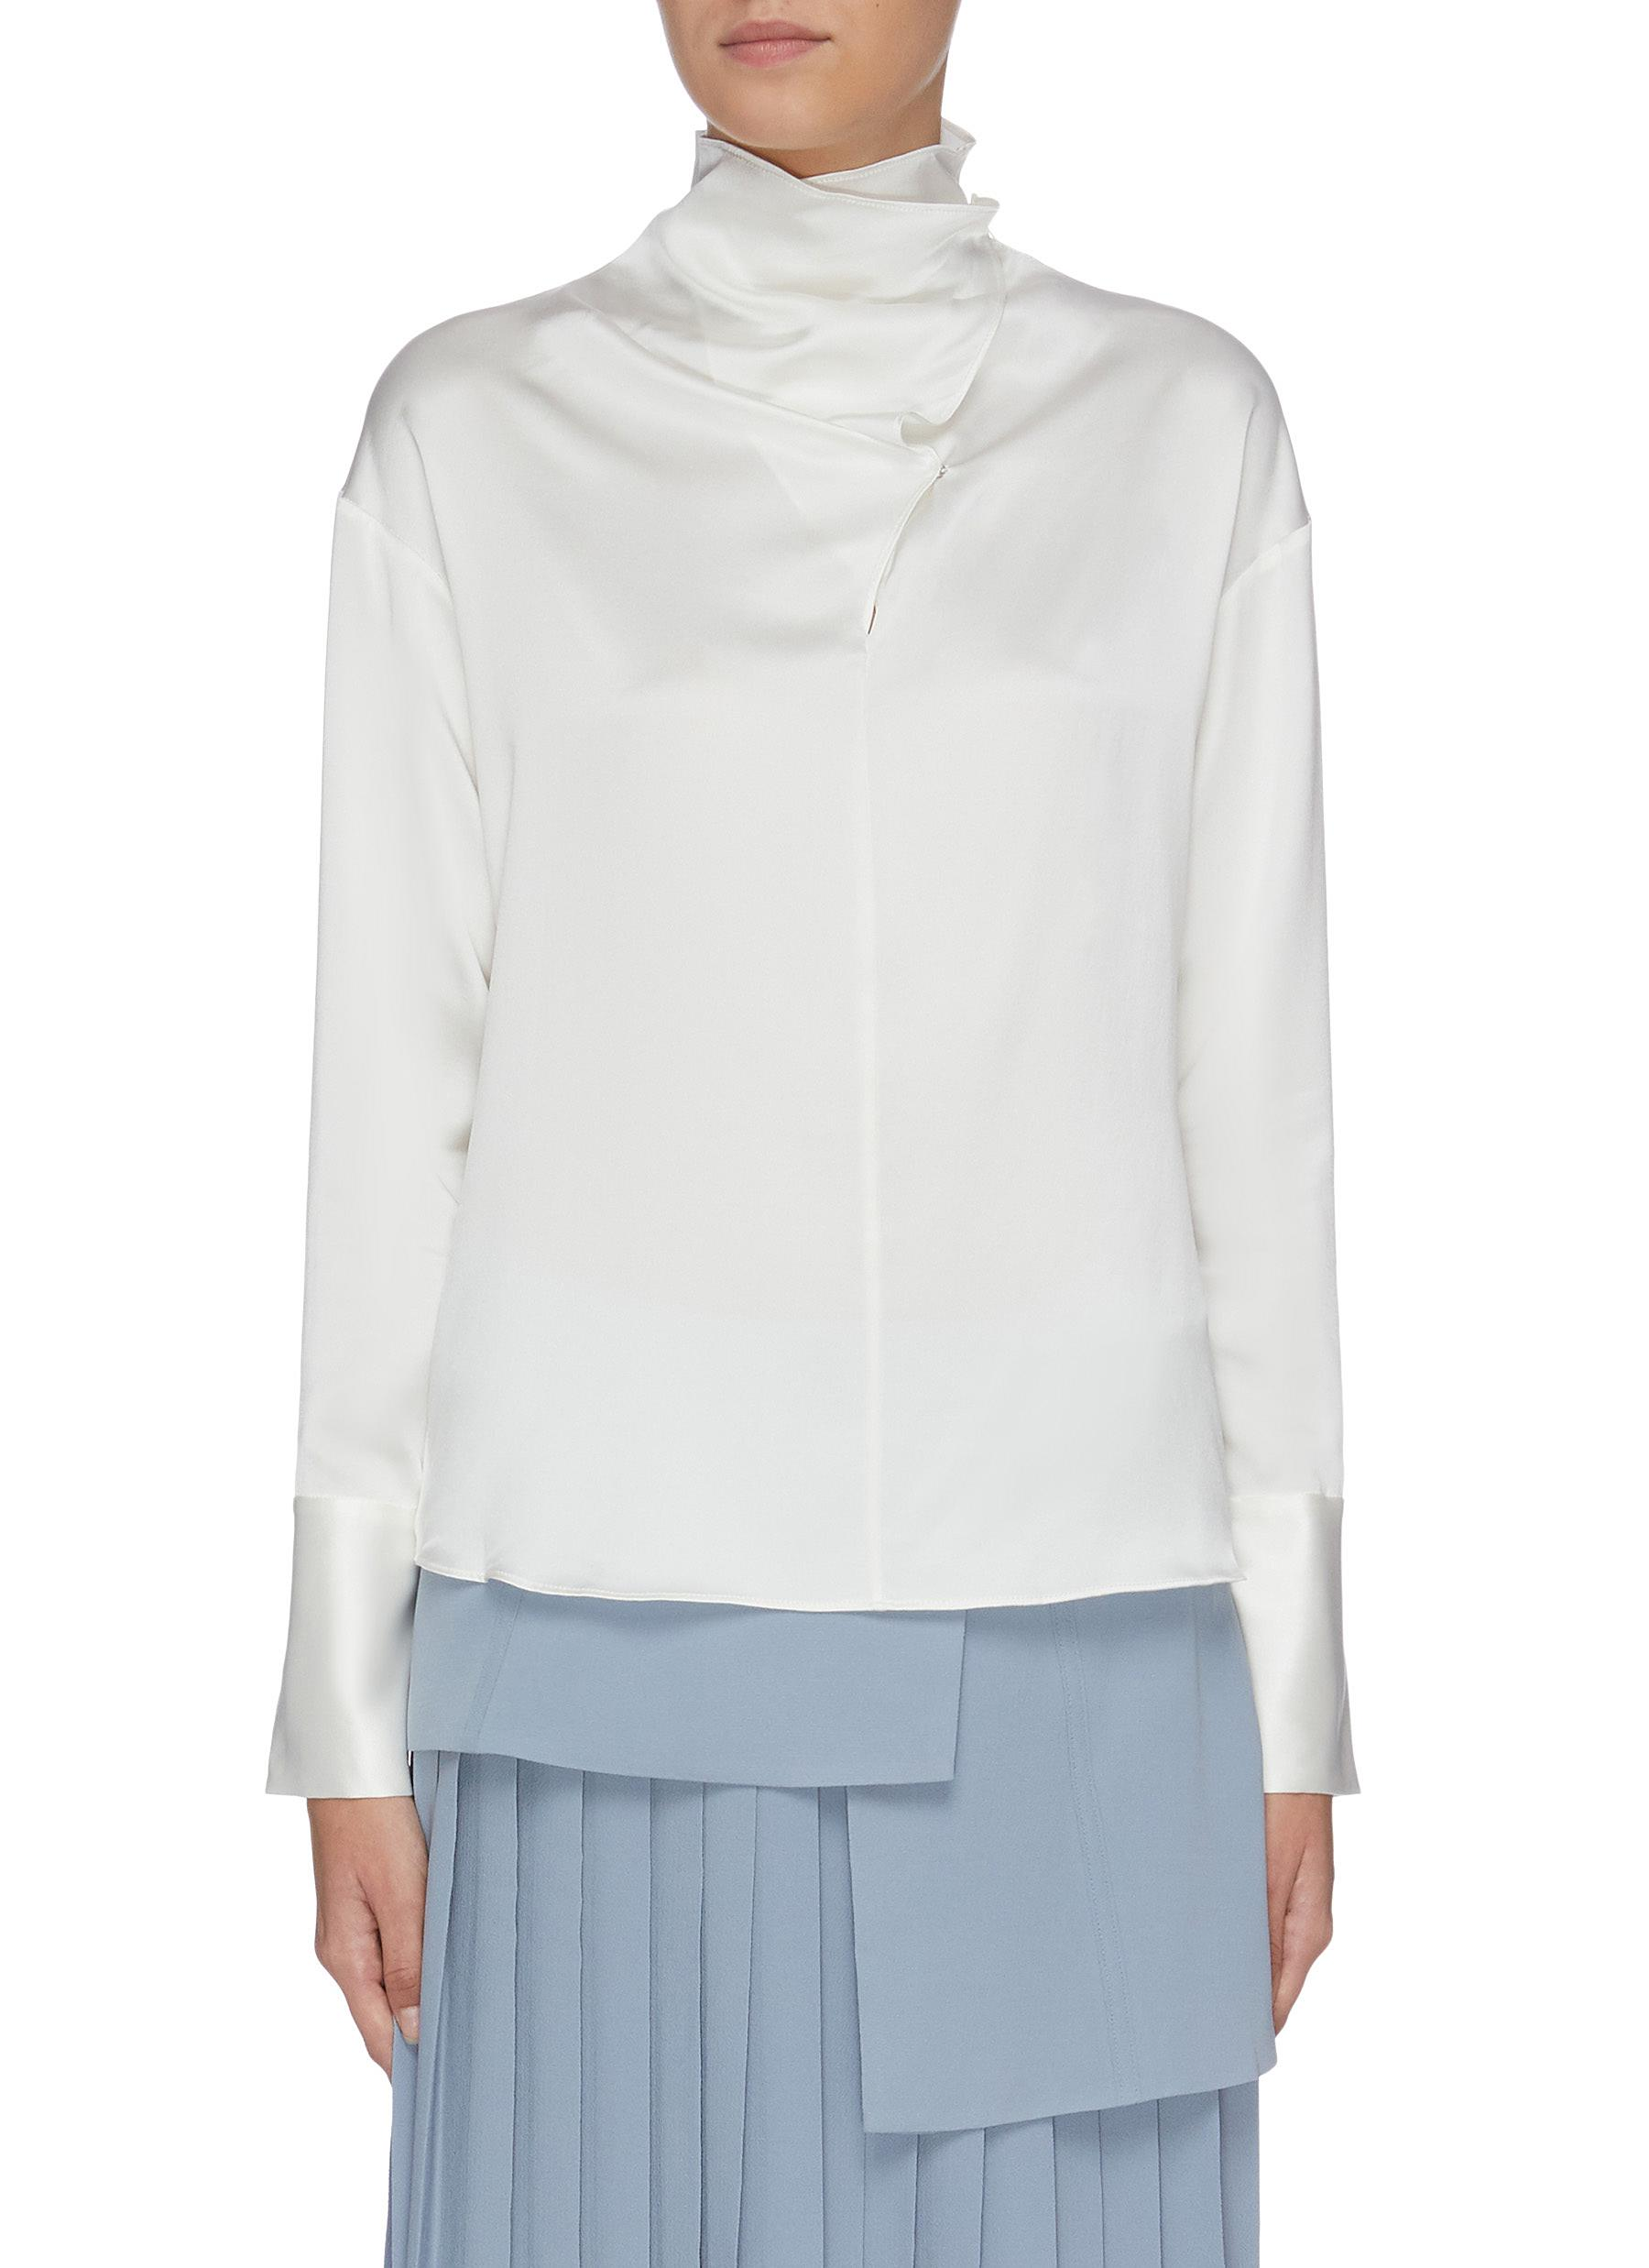 Folded collar mock neck top by Equil